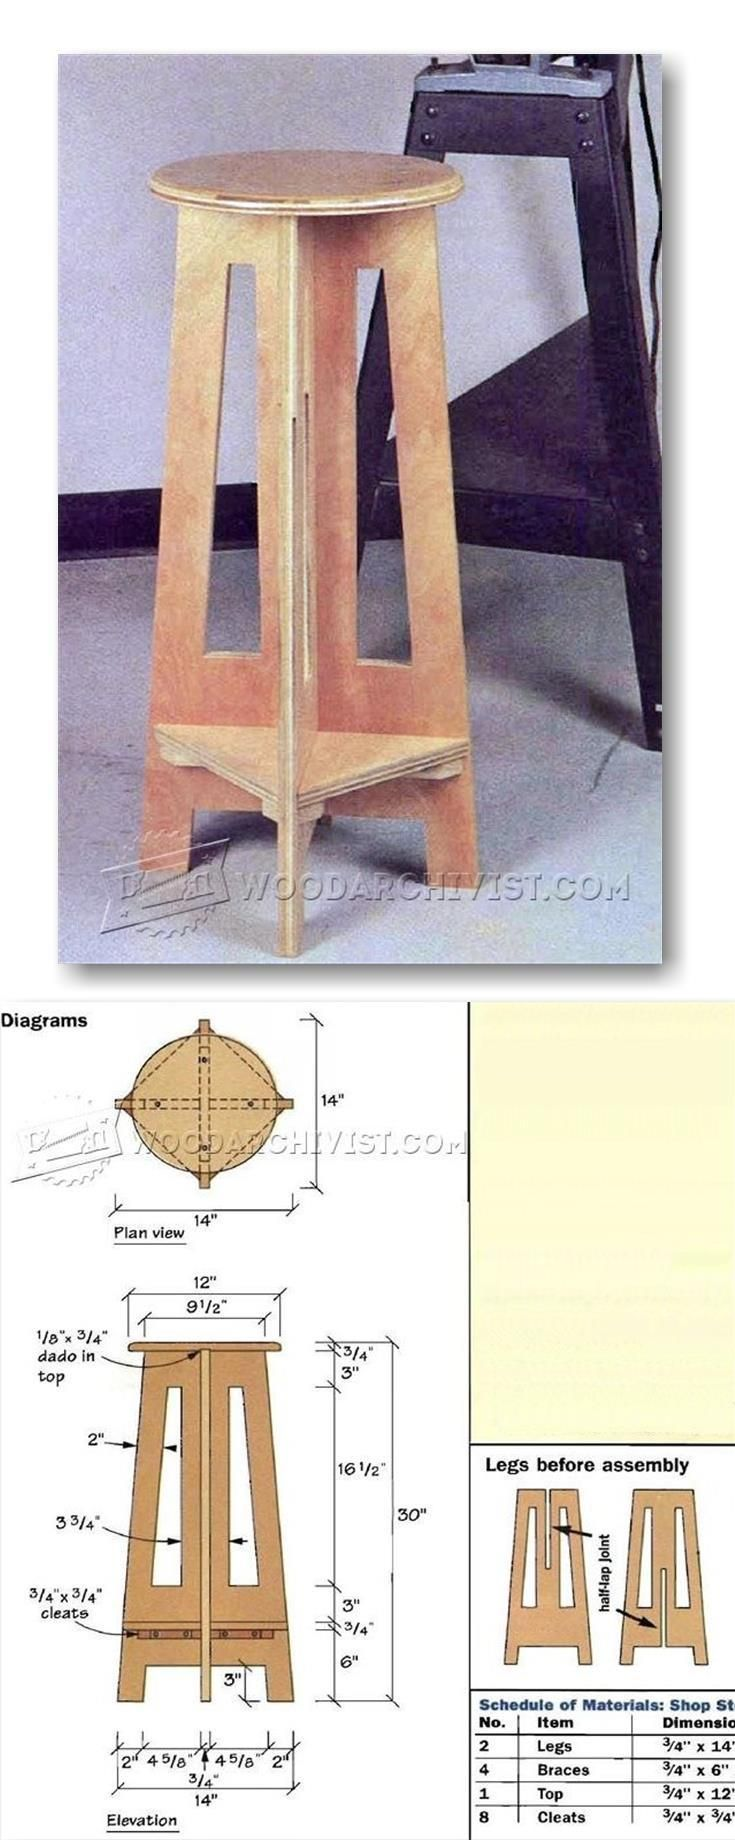 Simple Shop Stool Plans - Workshop Solutions Plans, Tips and Tricks | WoodArchivist.com